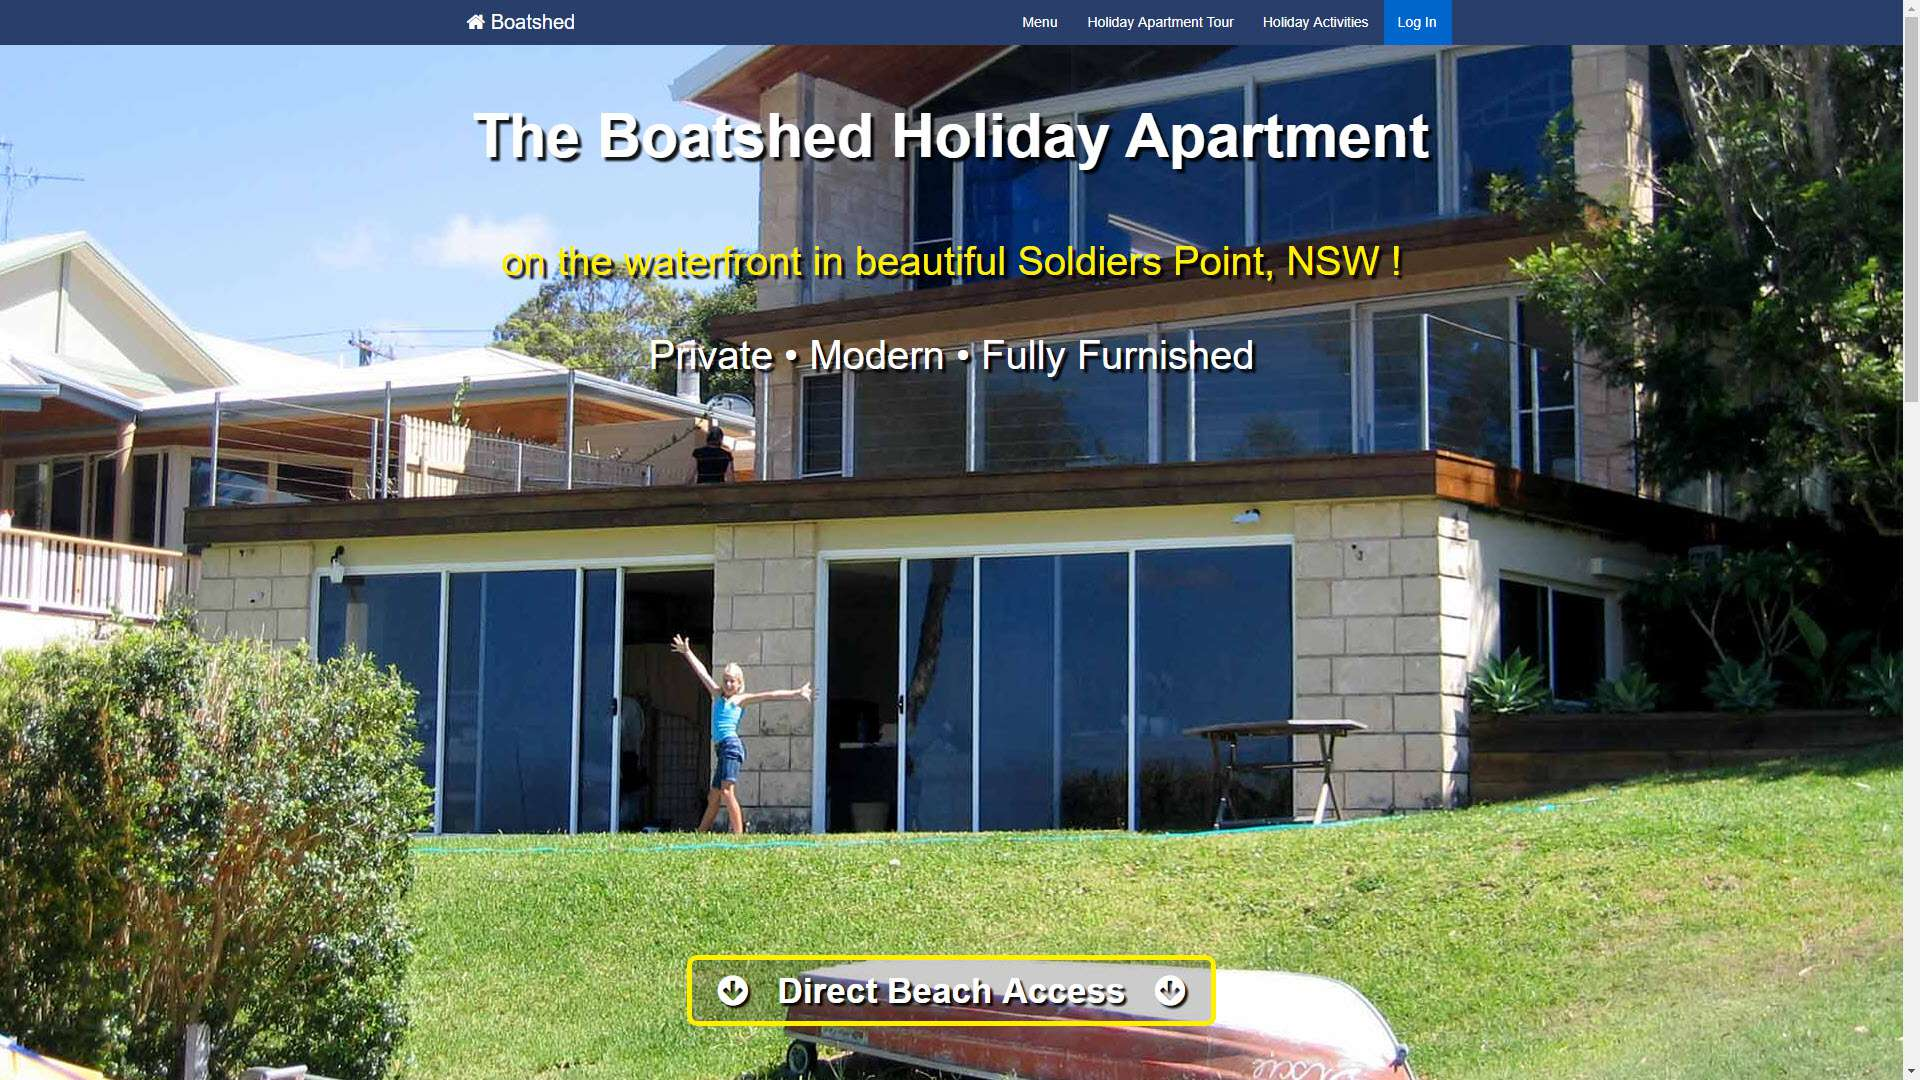 Boatshed Holiday Apartment, Soldiers Point, NSW website